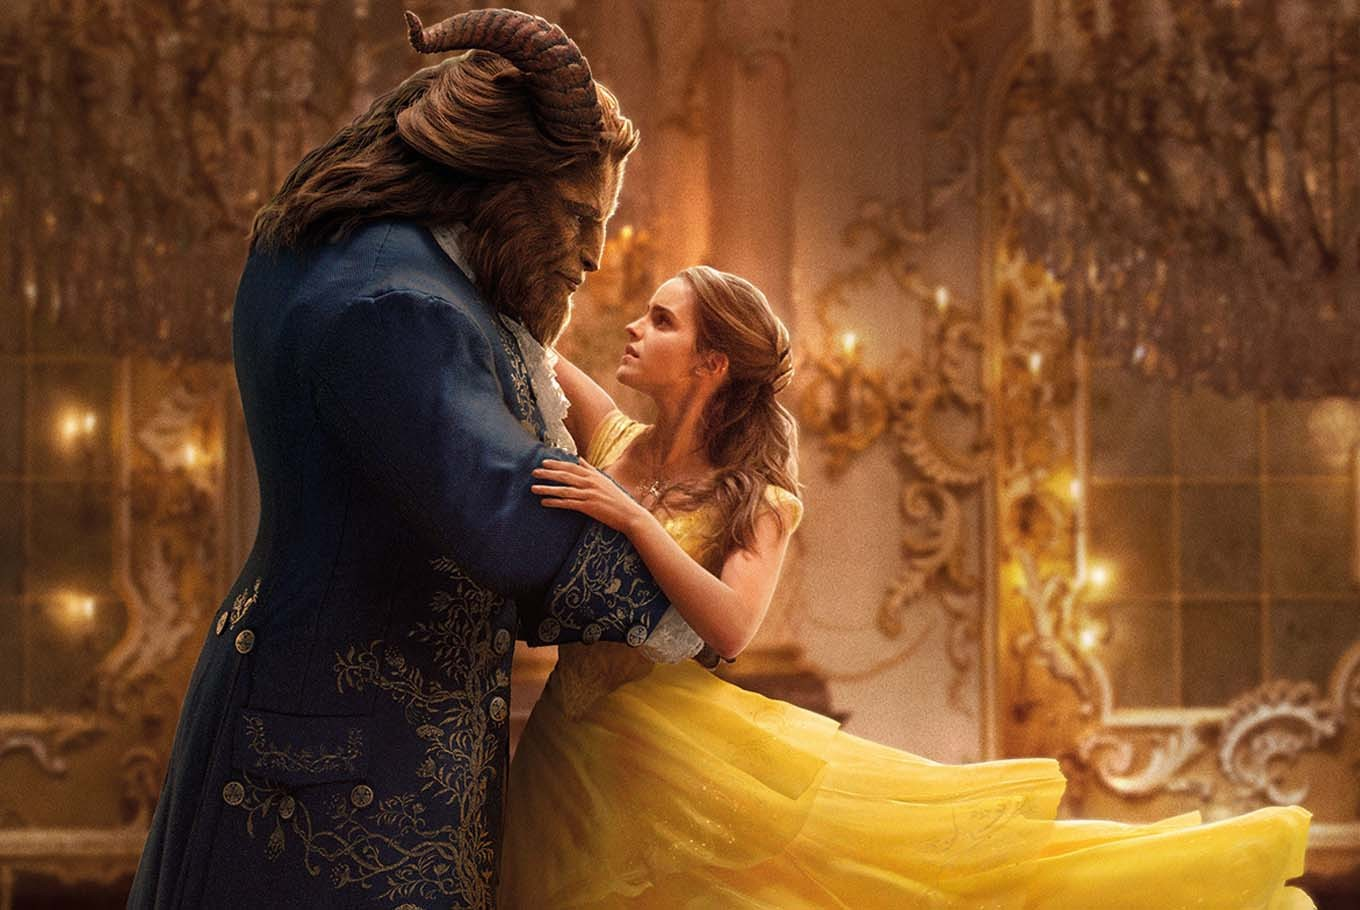 Tokyo Disneyland to open first 'Beauty and the Beast'-themed ride-through attrac...